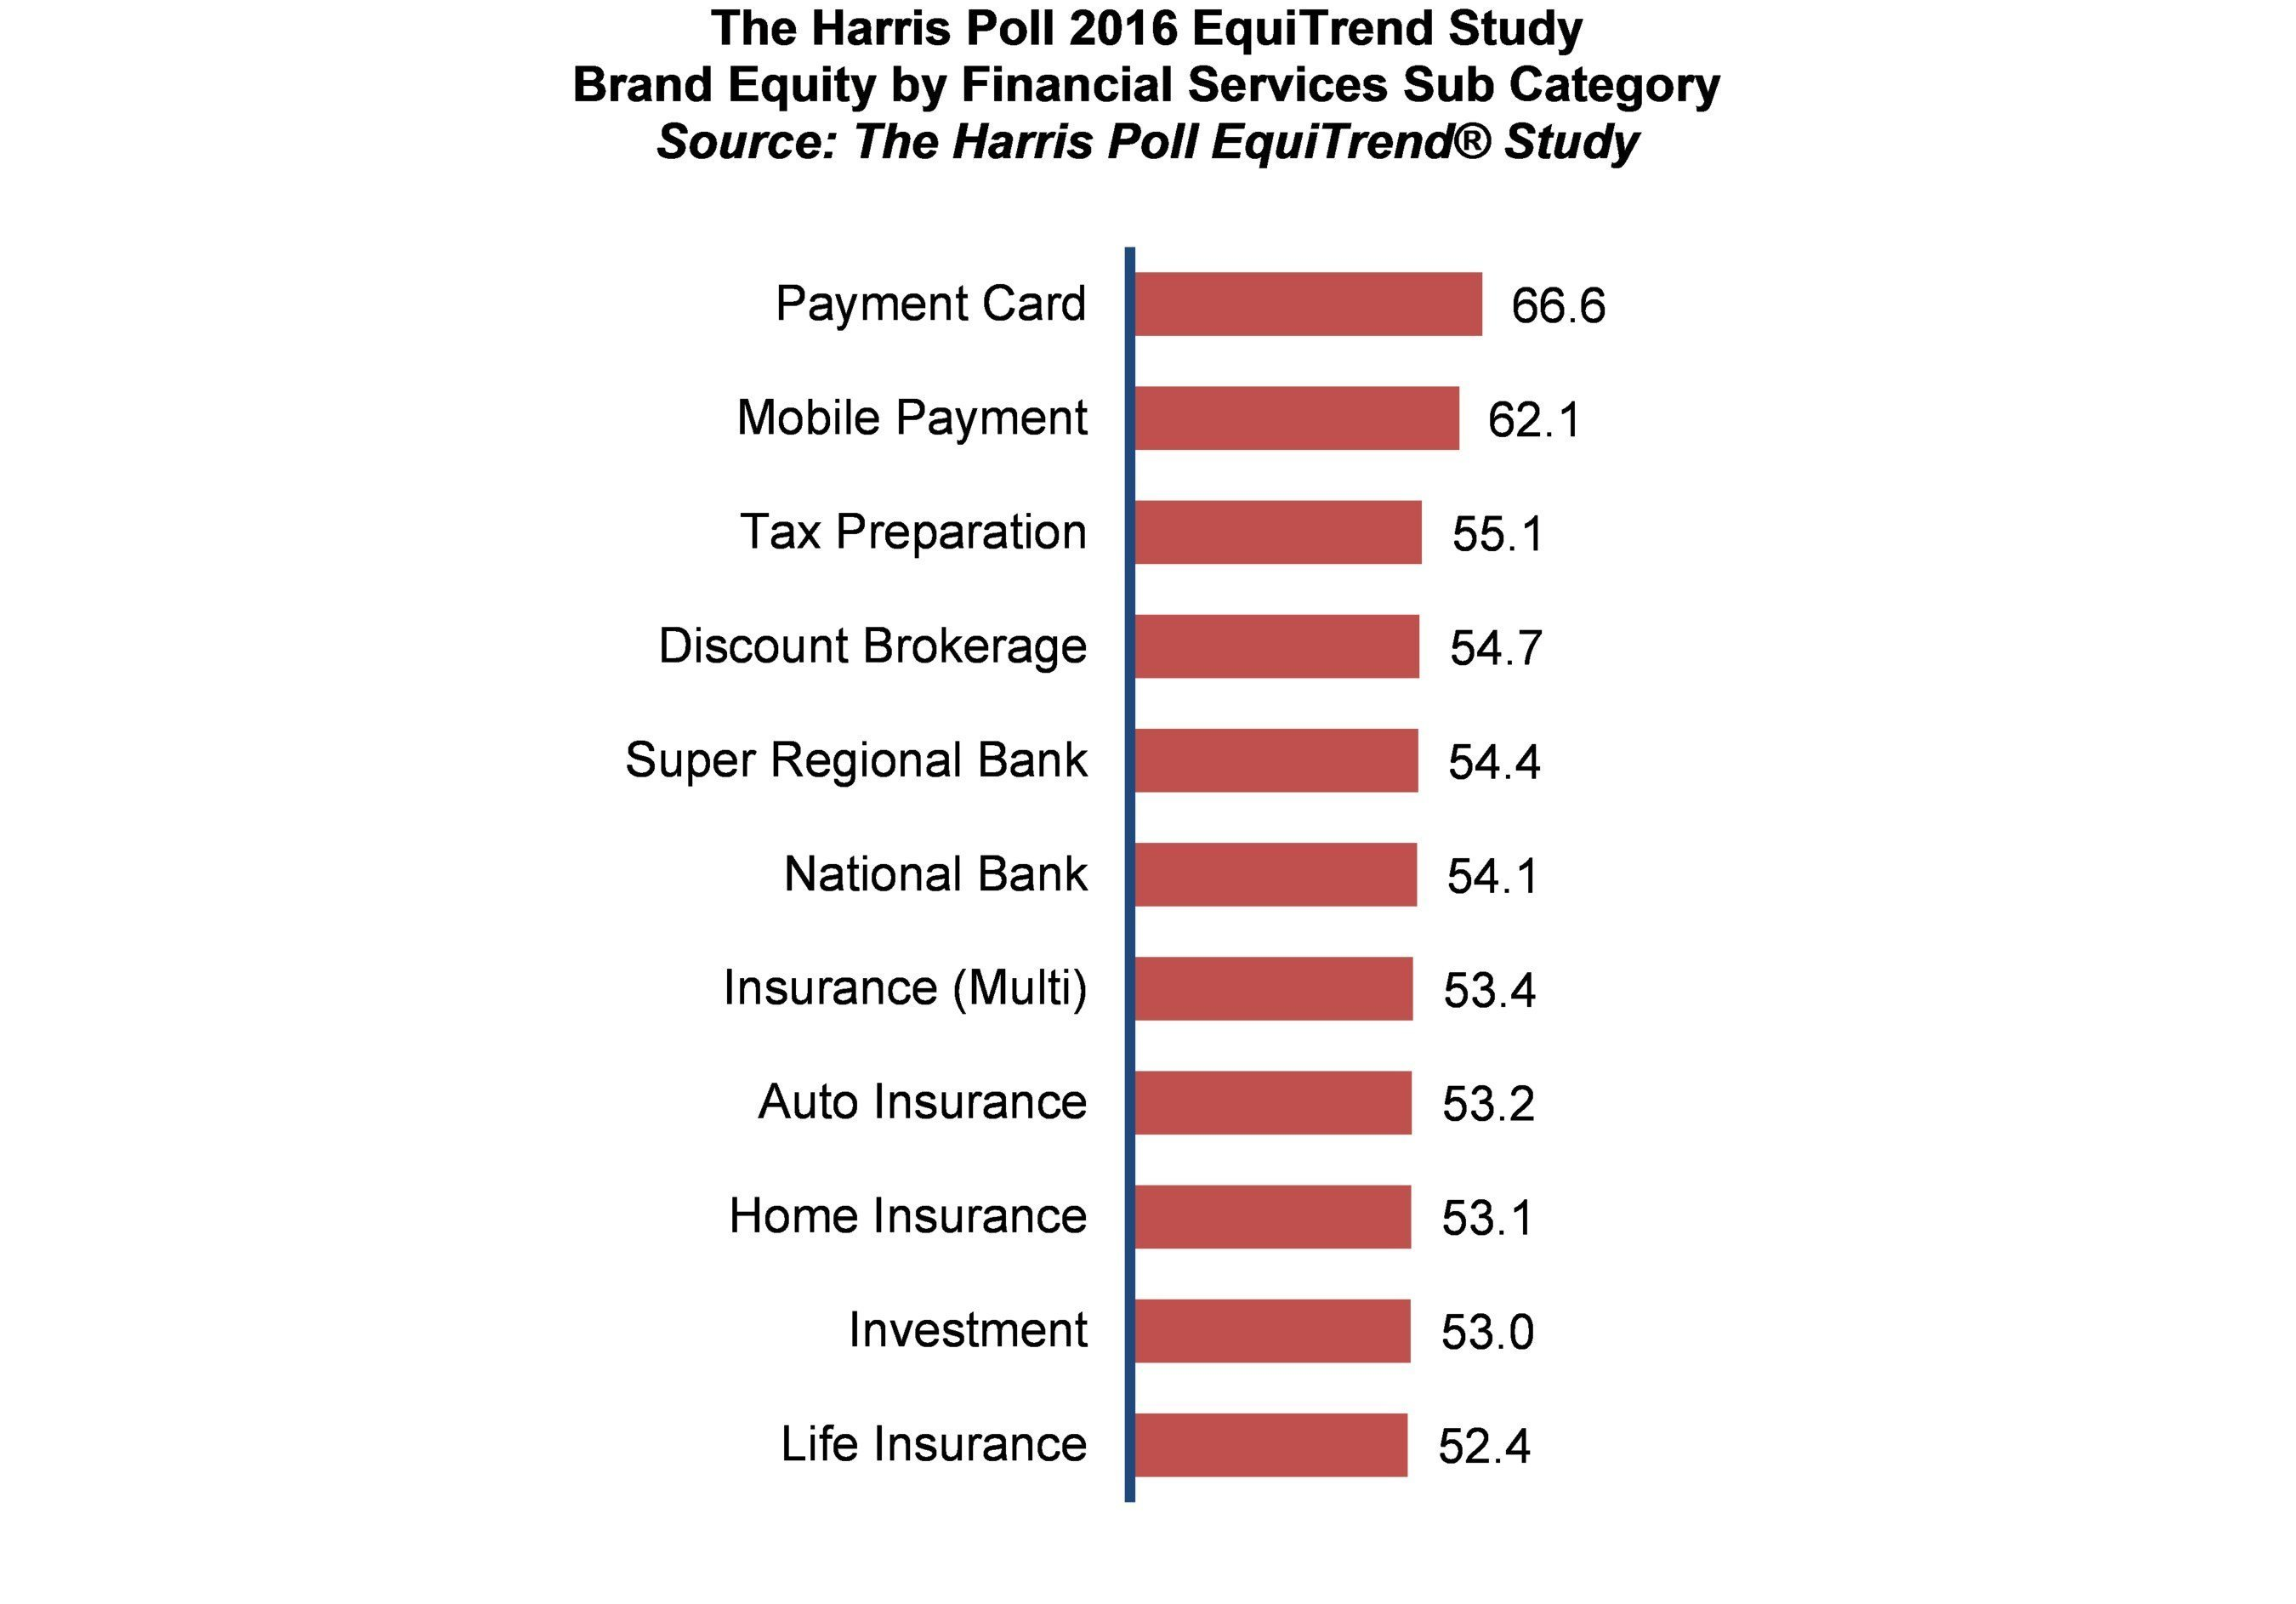 Brand Equity by financial services